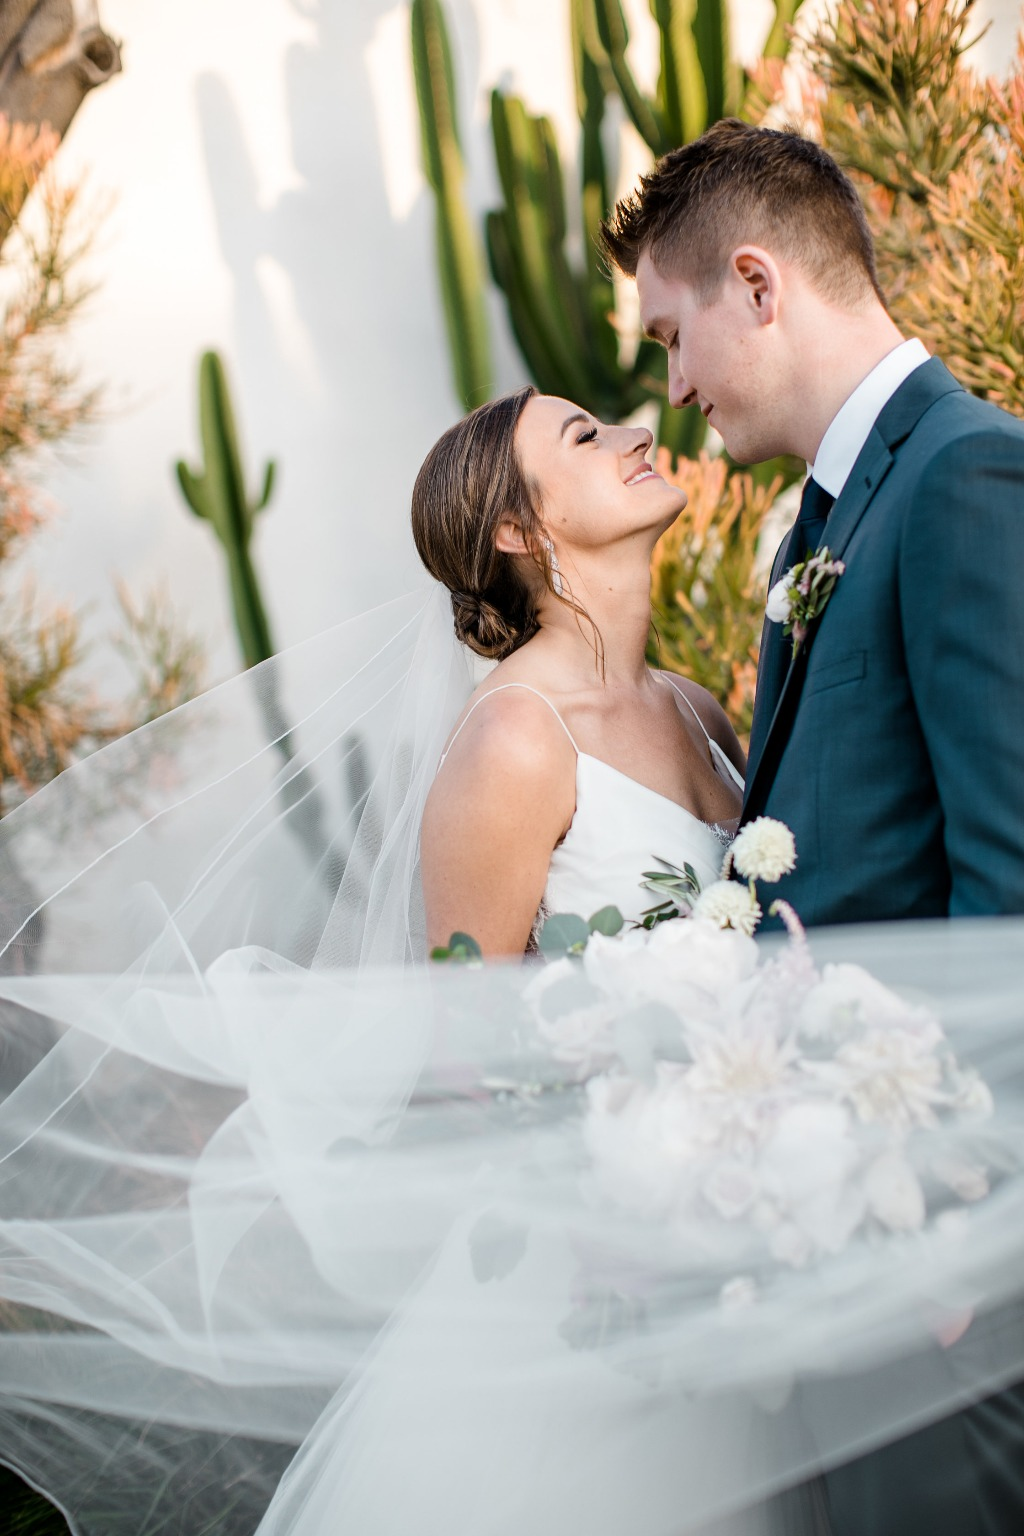 Lauren & Tyler's destination wedding was a dreamy one! Not only was the bride and groom a gorgeous couple, but every vendor executed